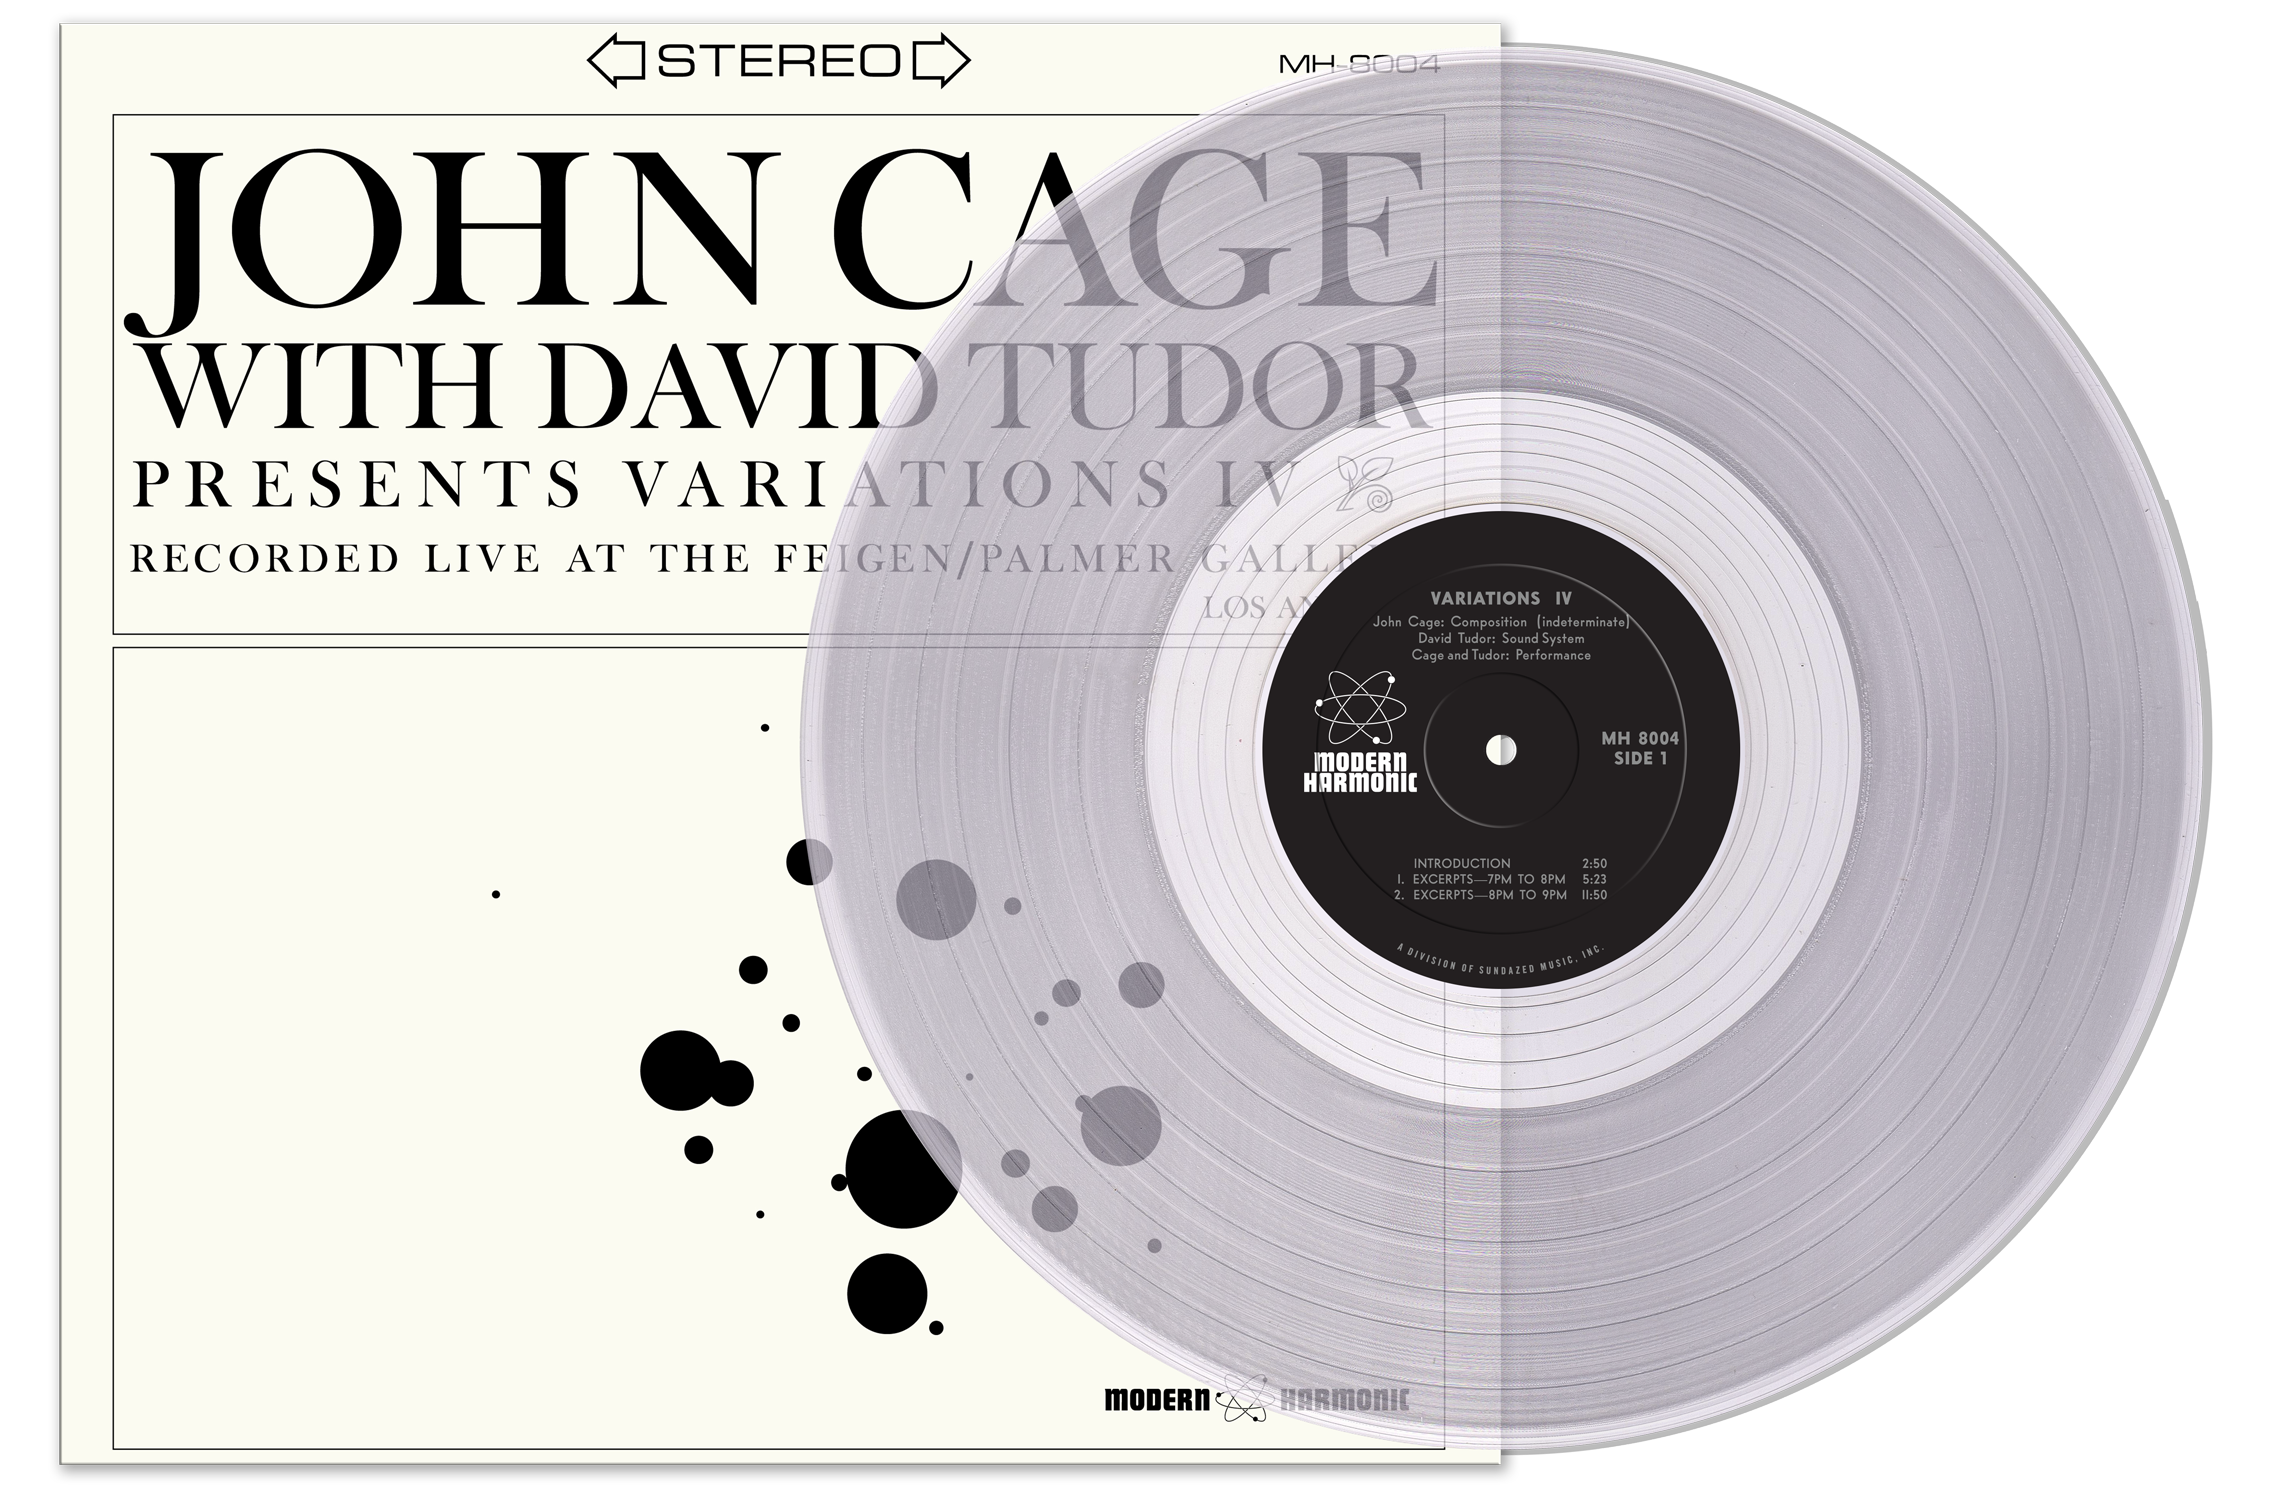 Cage, John With David Tudor - Variations IV - LP